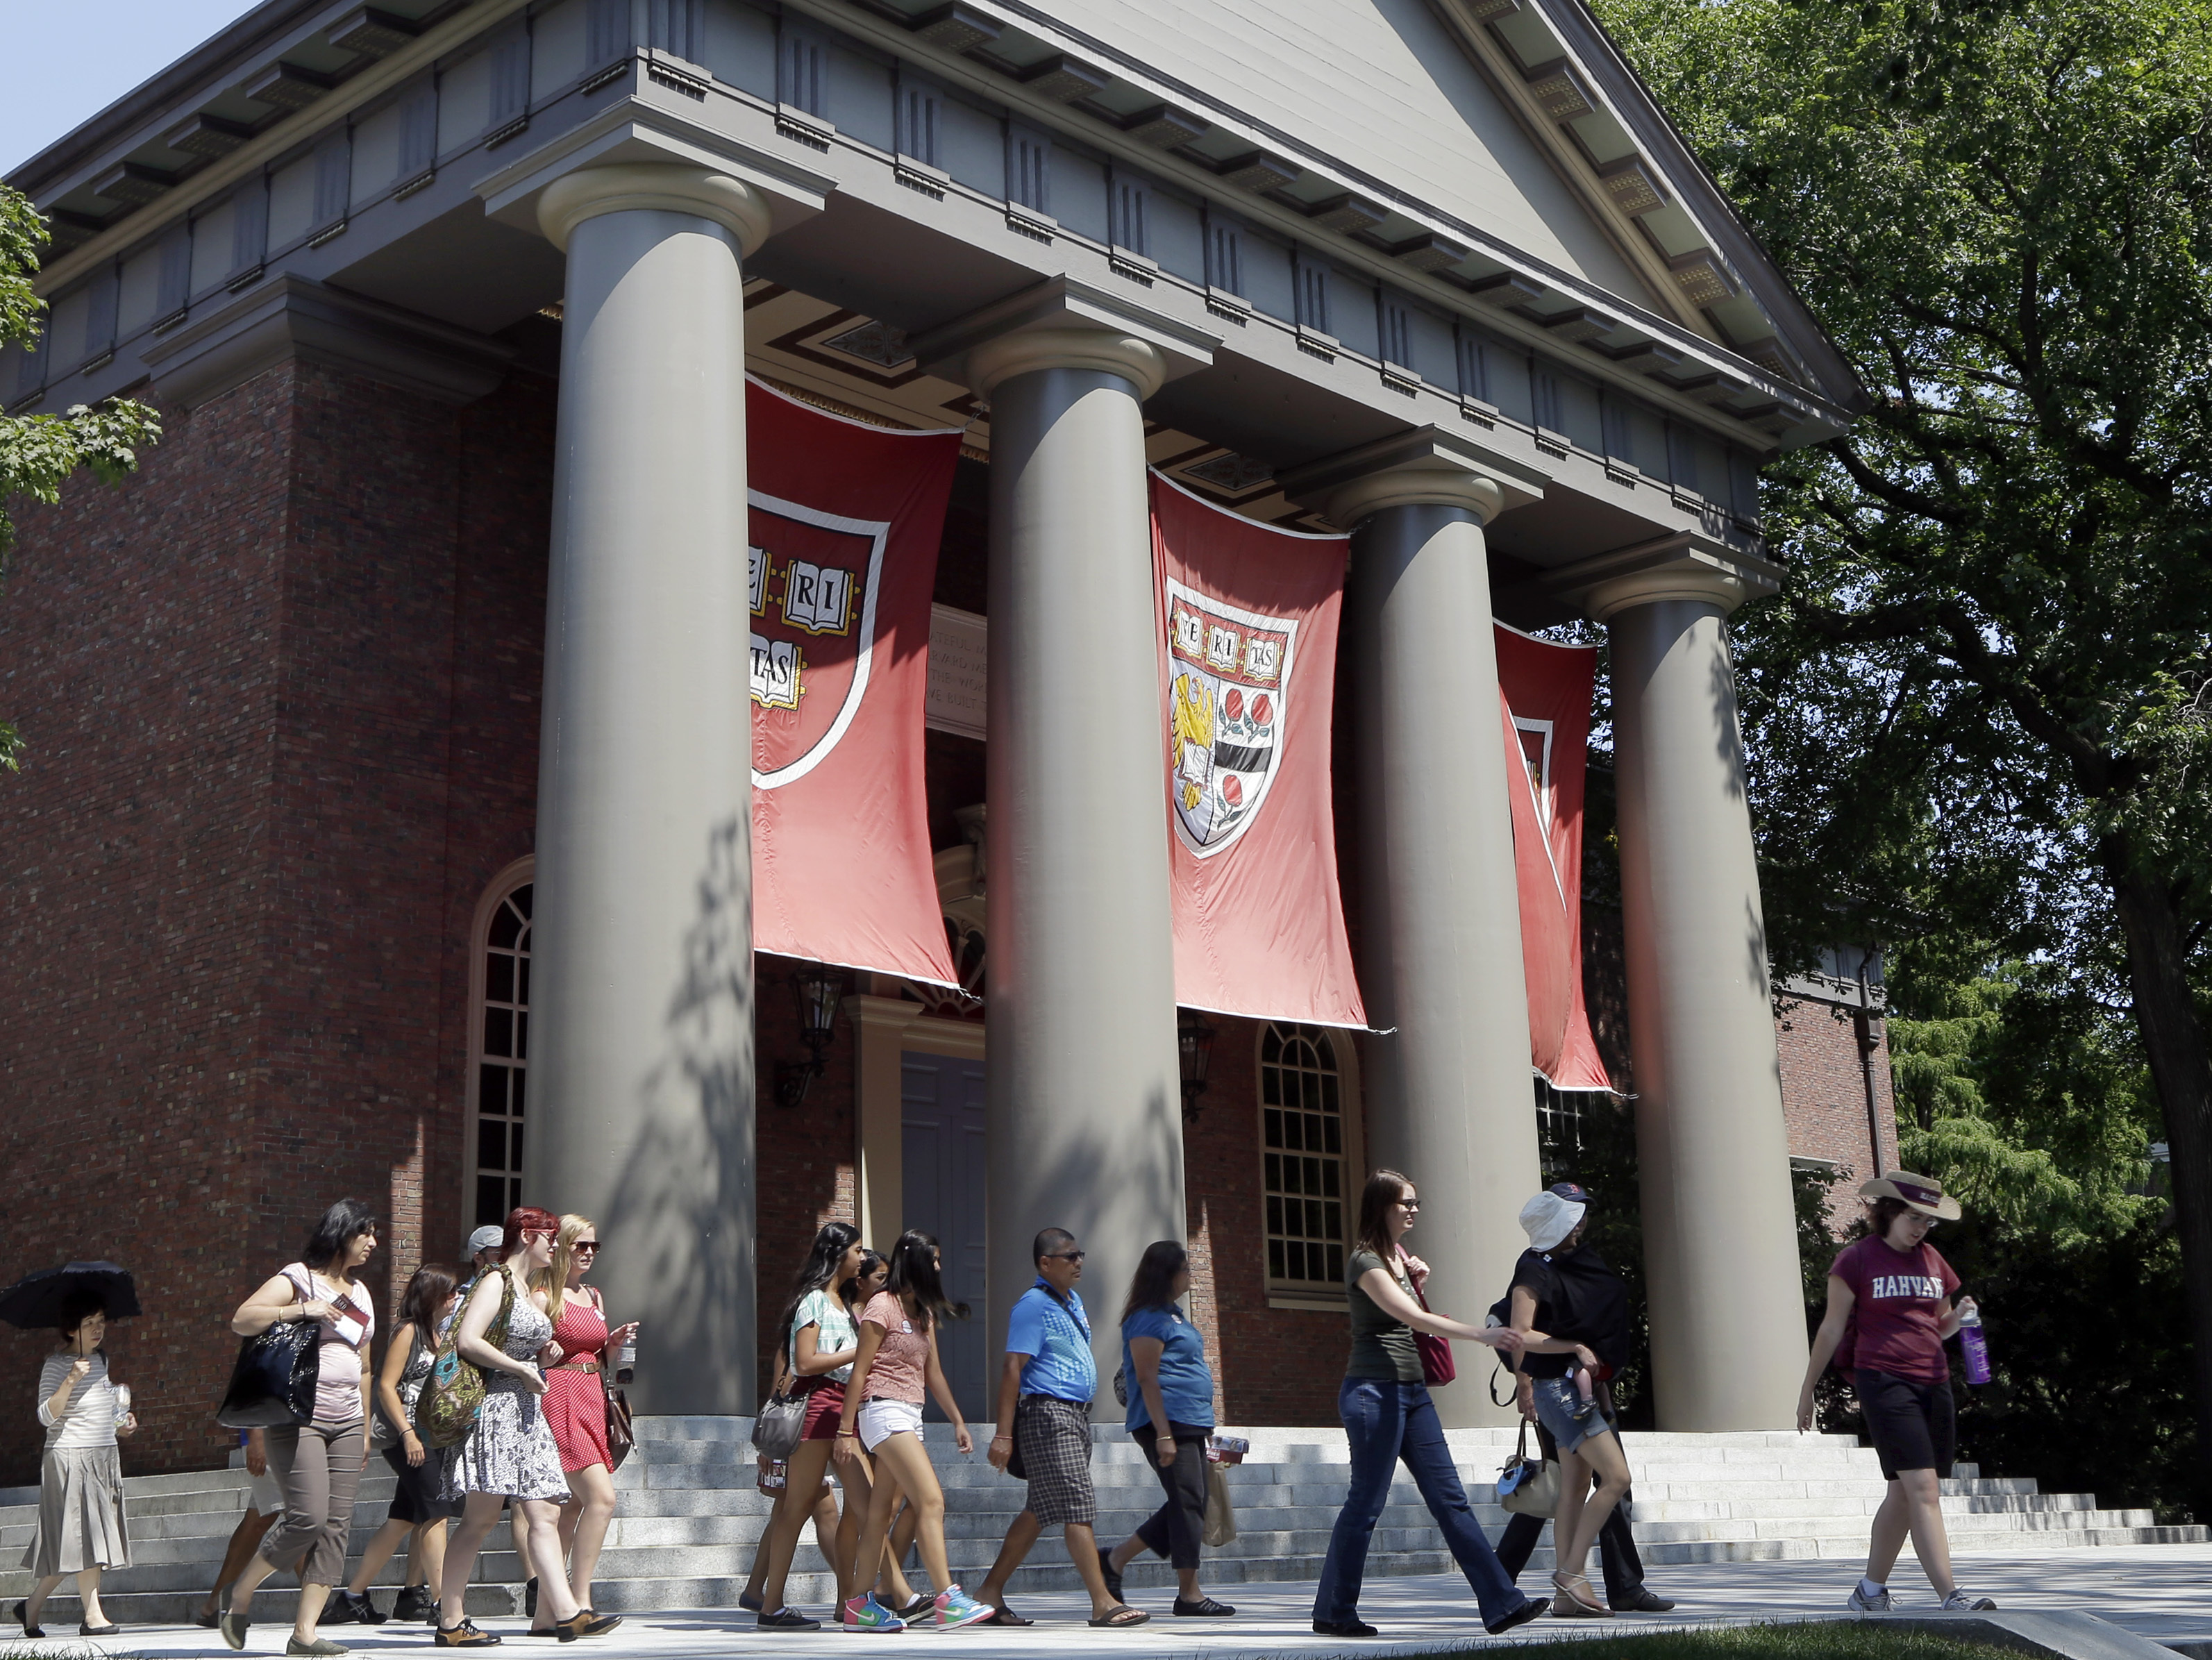 55 Colleges, Universities Under Investigation For Abuse Claims